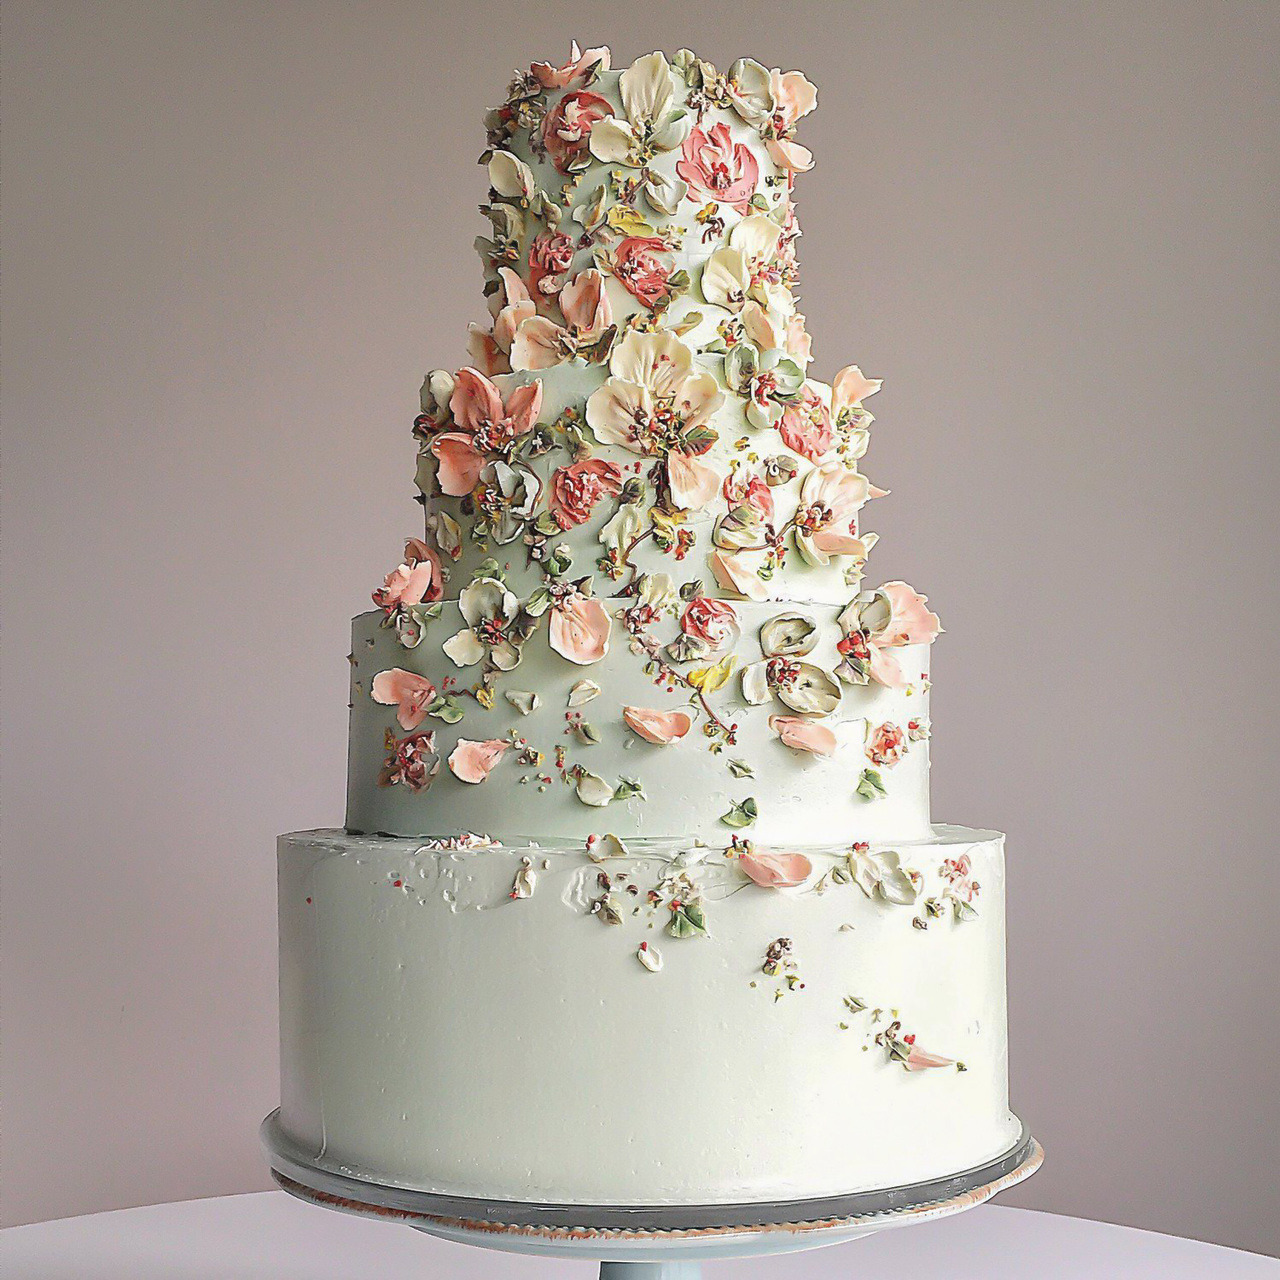 Beautiful Pastel Green Wedding Cake Decorated With Floral Petalsby Cynzcakes